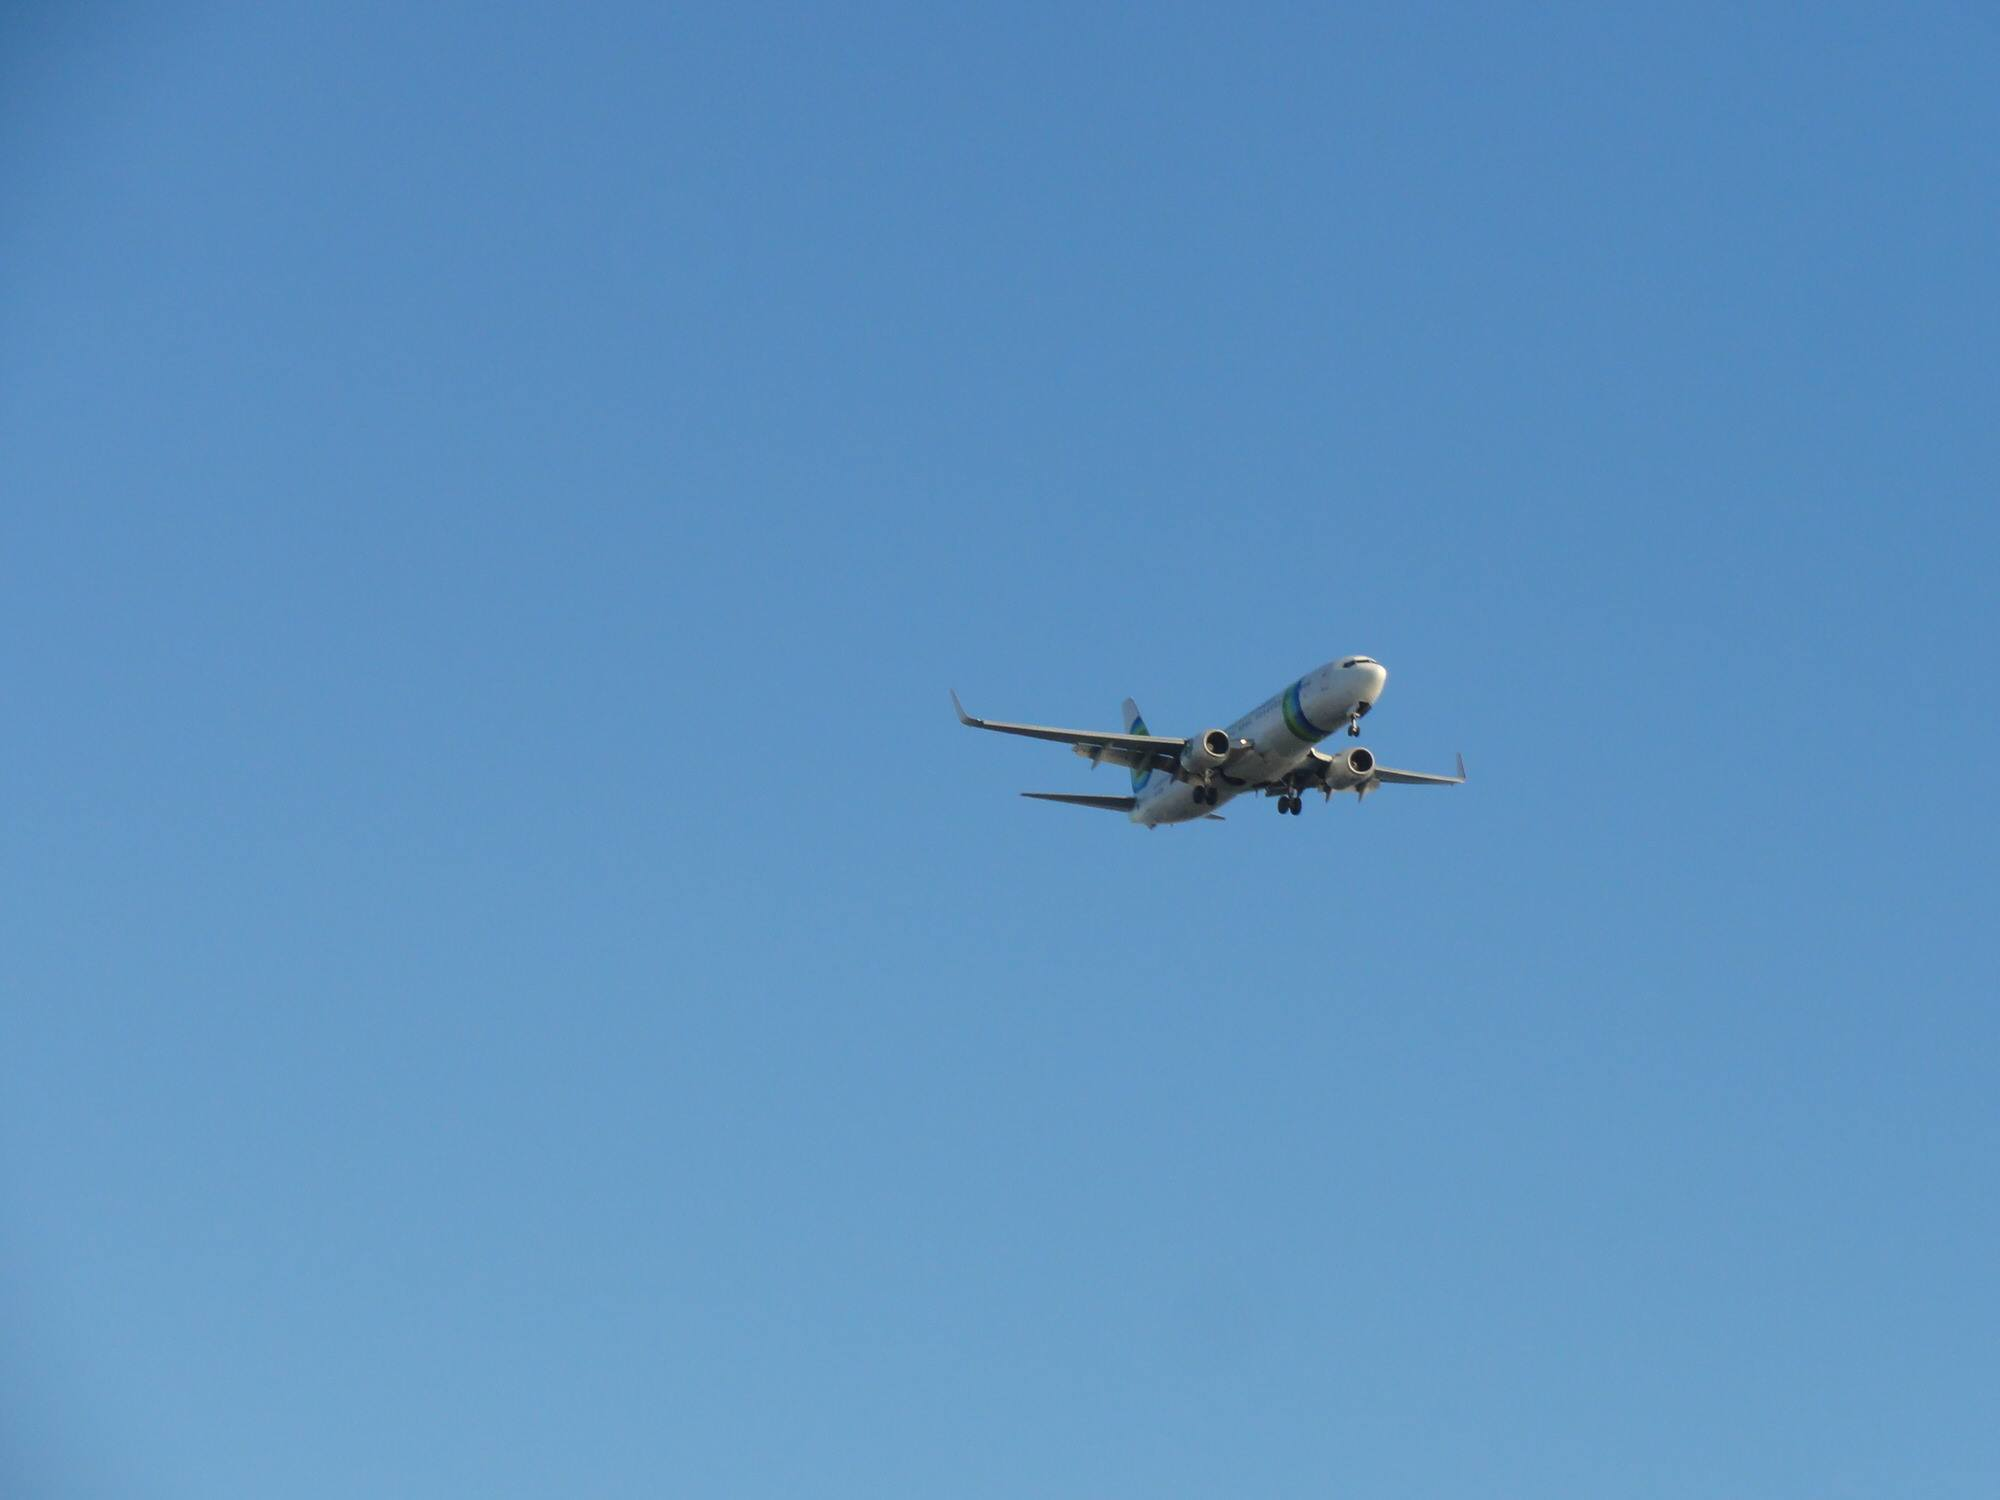 Plane flying in blue sky.